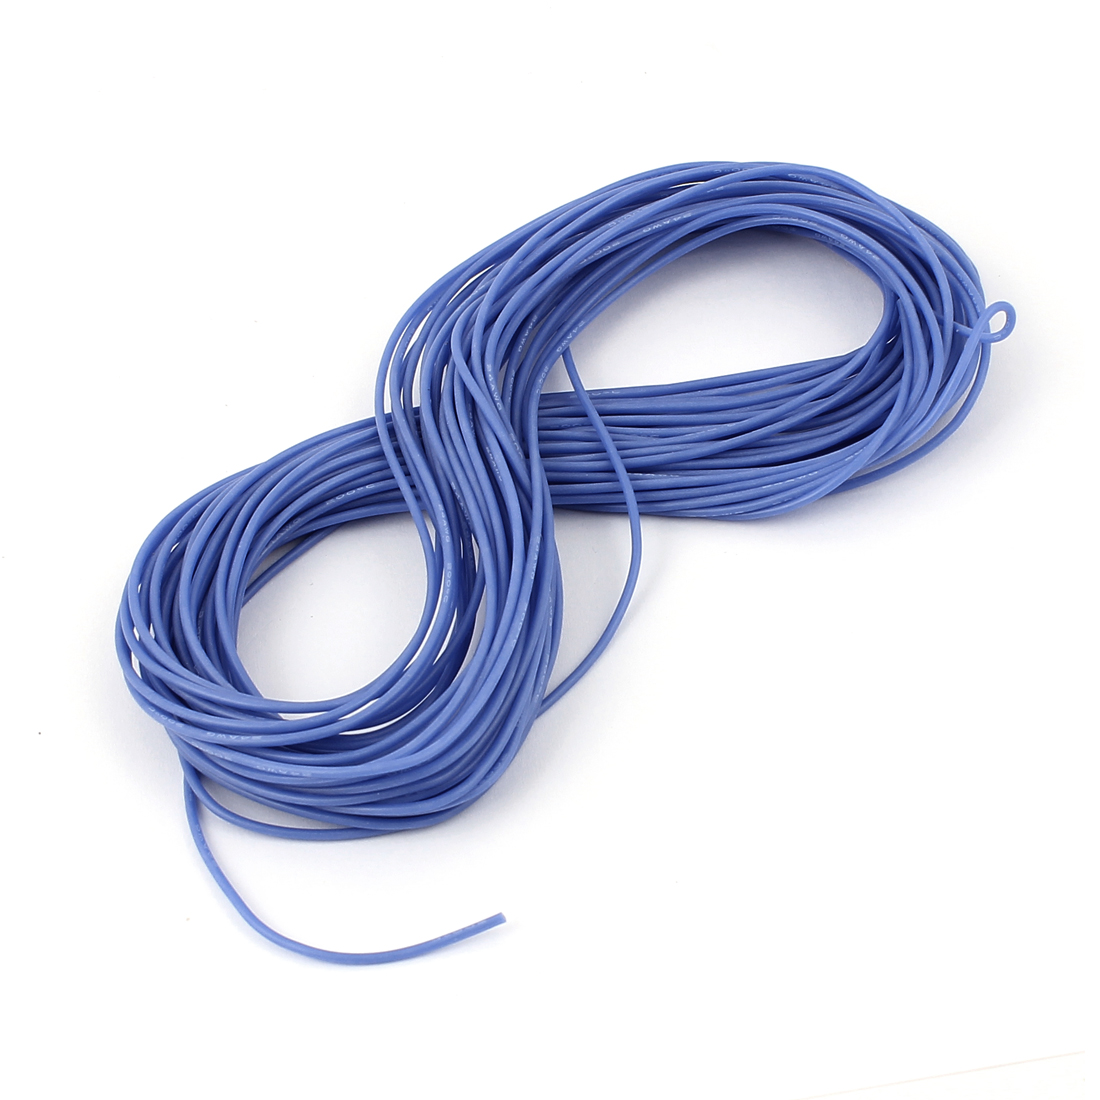 15M 24AWG Electric Copper Core Flexible Silicone Wire Cable Blue